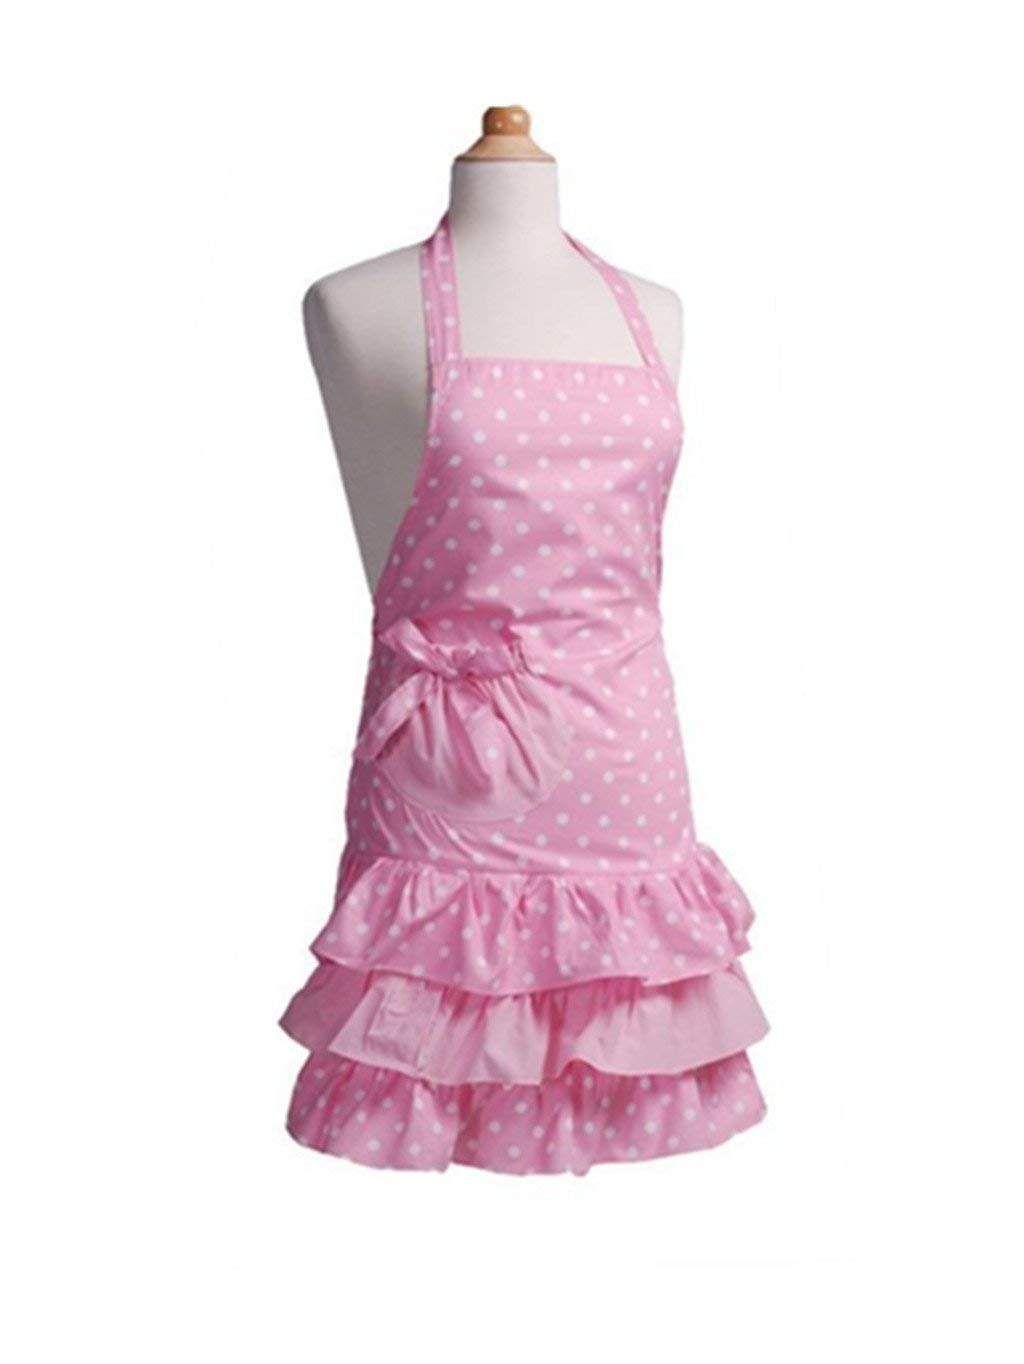 Payviva 100% Cotton Fabric Material Three Tiered Ruffles With a Big Bow on the Pocket Kitchen kids Apron Pink Dots Color (Child)